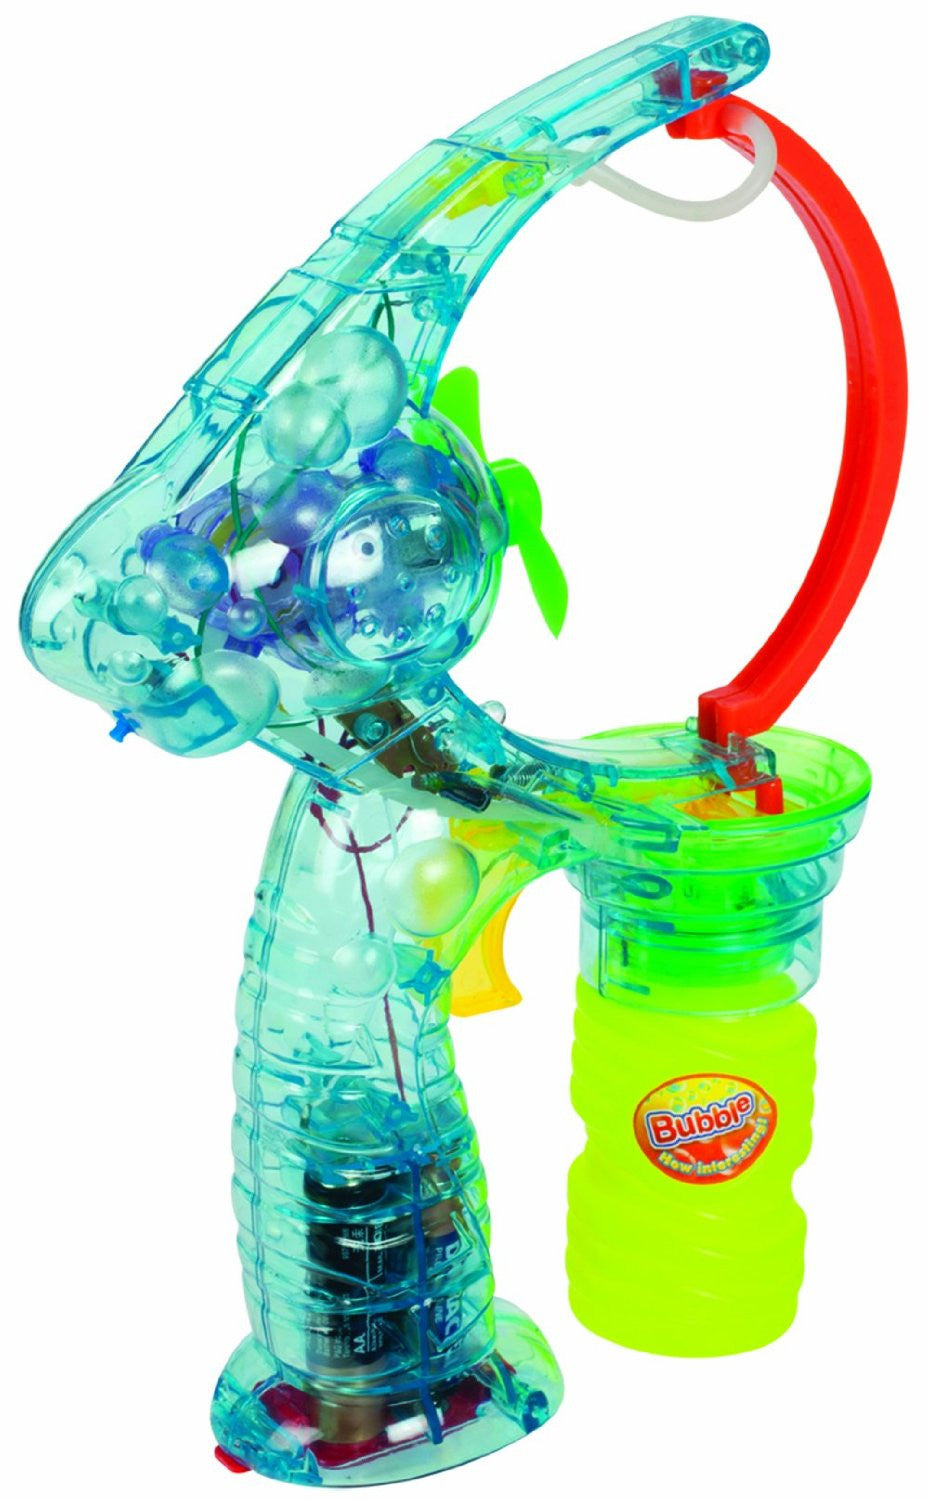 Light-Up Colossal Bubble Blower by Toysmith - Off The Wall Toys and Gifts